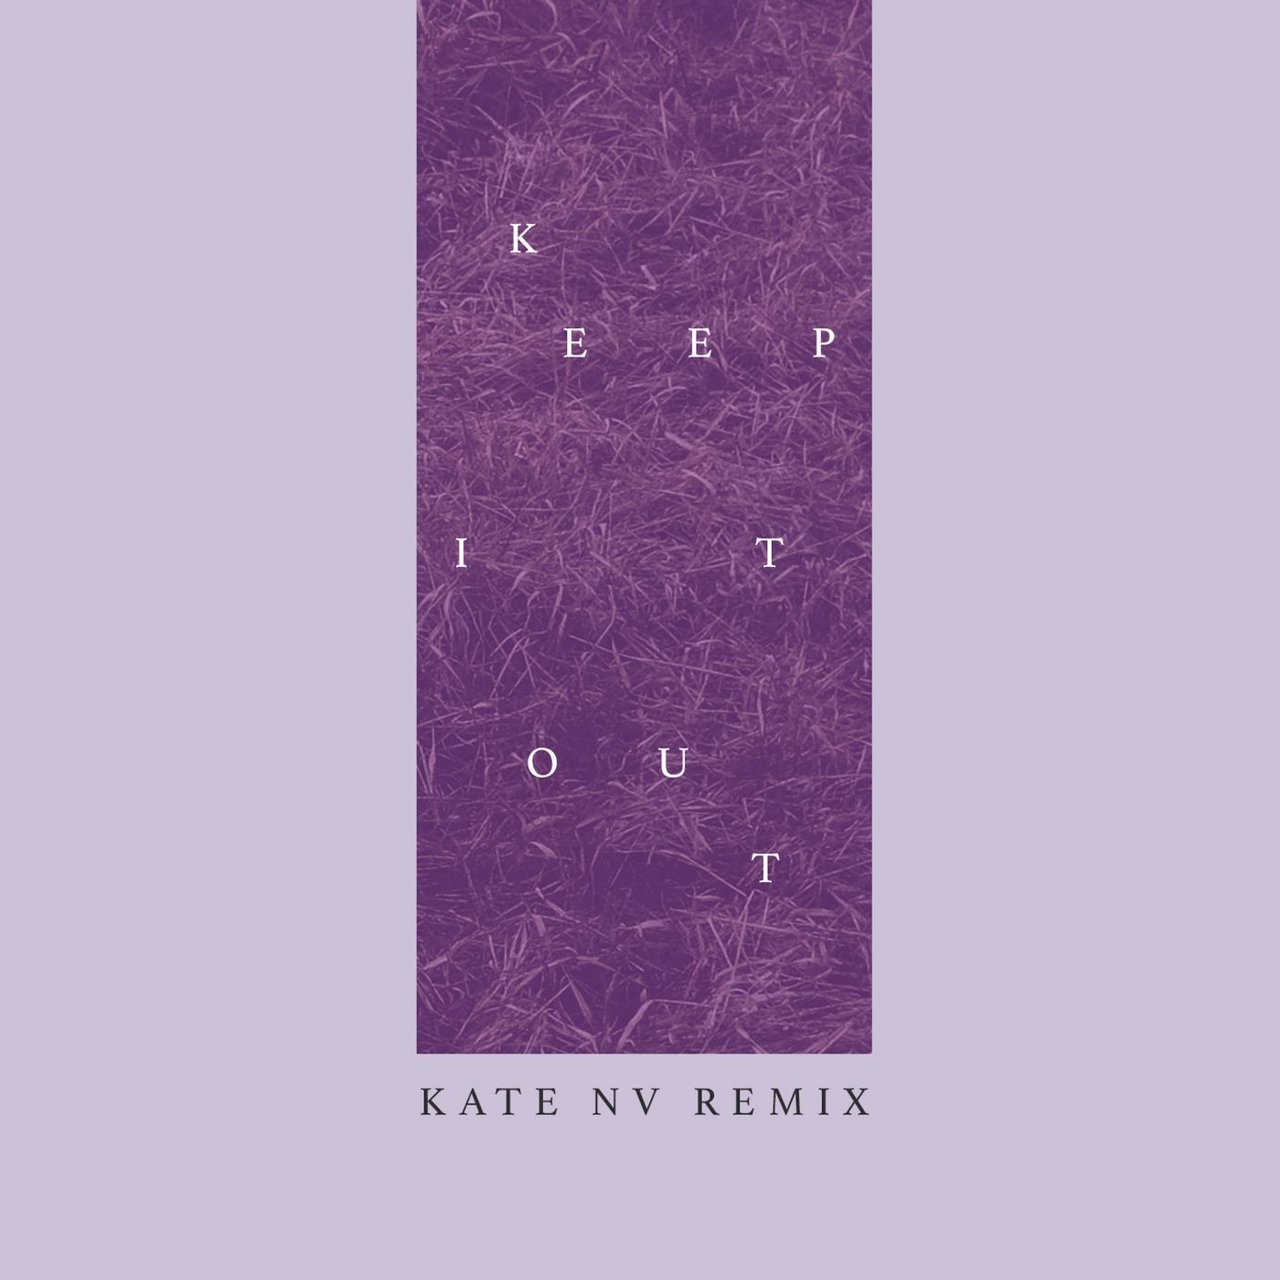 Keep It Out (Kate NV Remix)